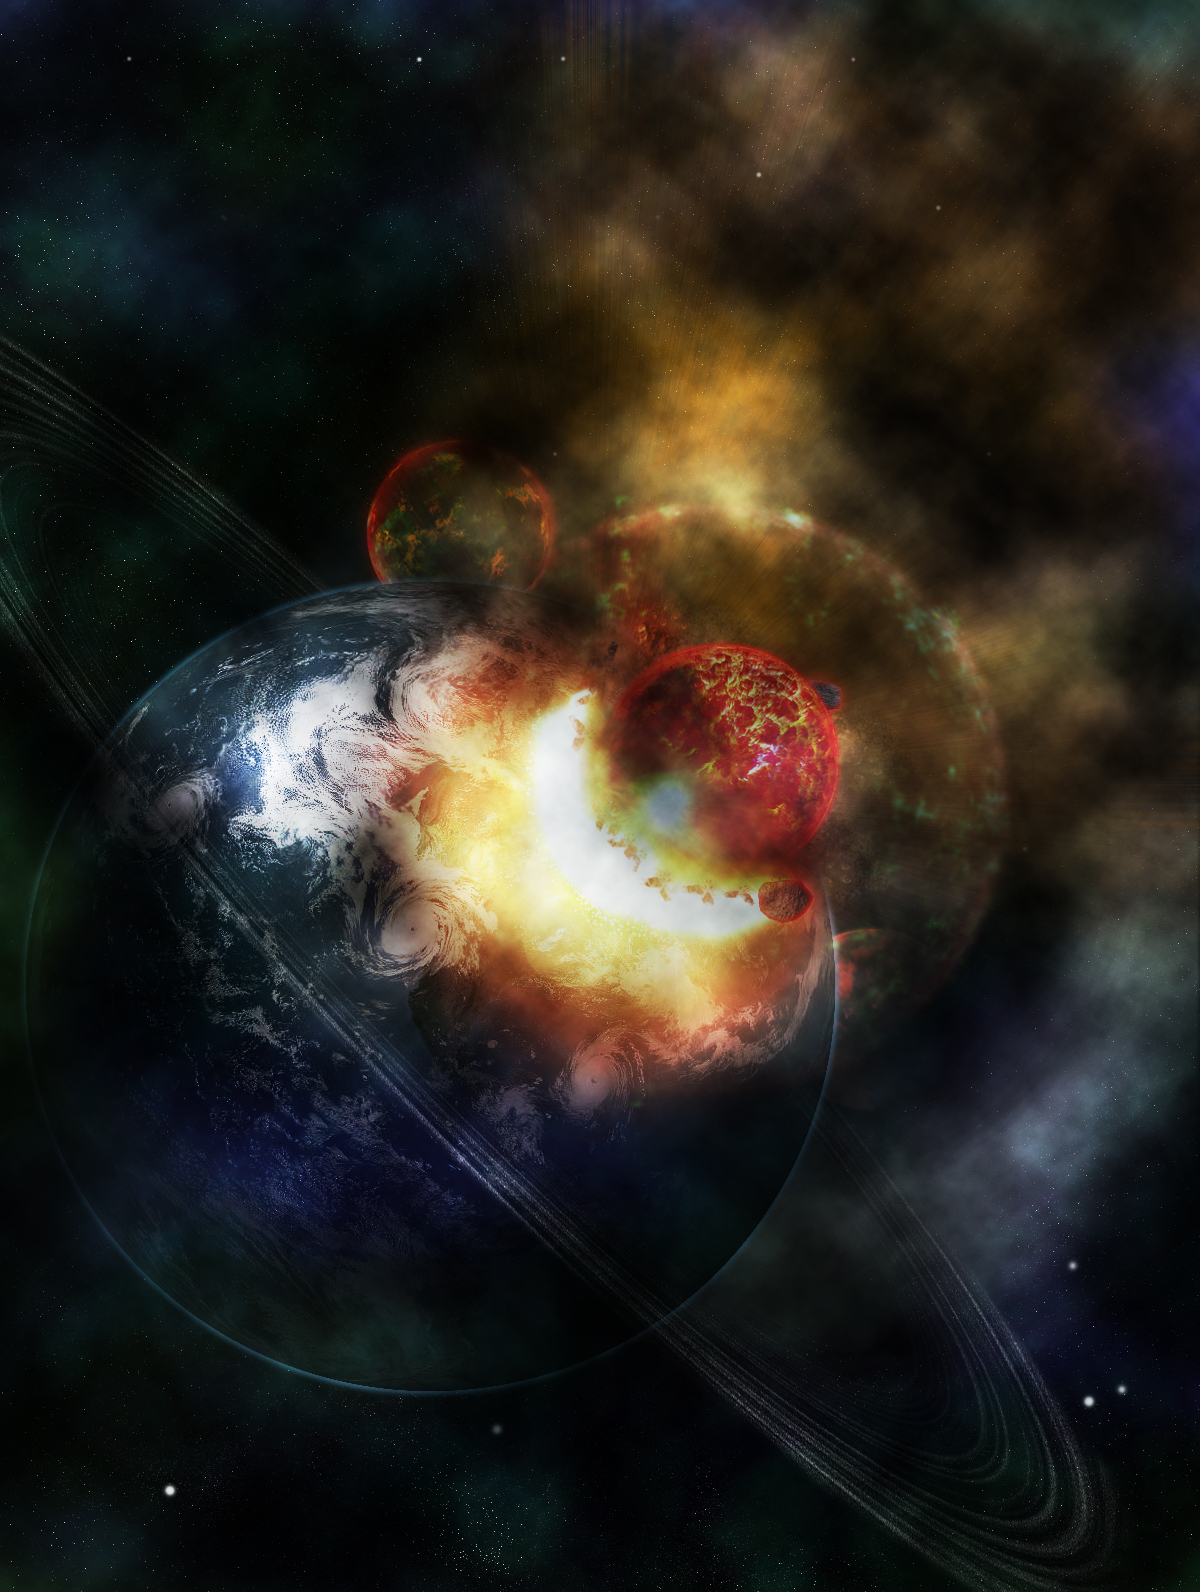 Exploding Planet v2 by connorz16 on deviantART